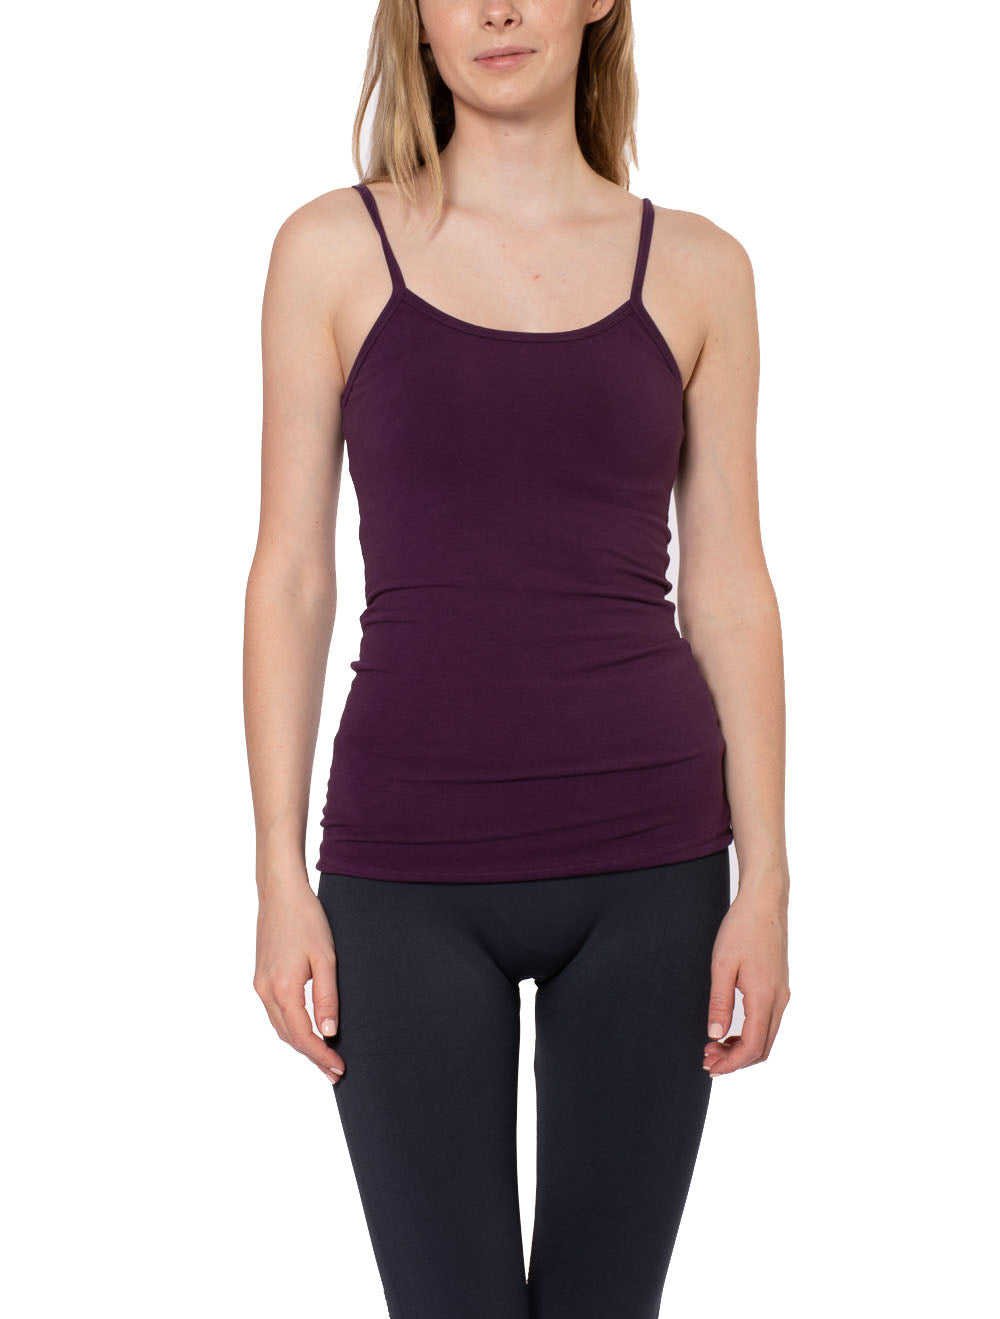 Long Spaghetti Tank with Bra (Style 586, Concord Grape) by Hard Tail Forever